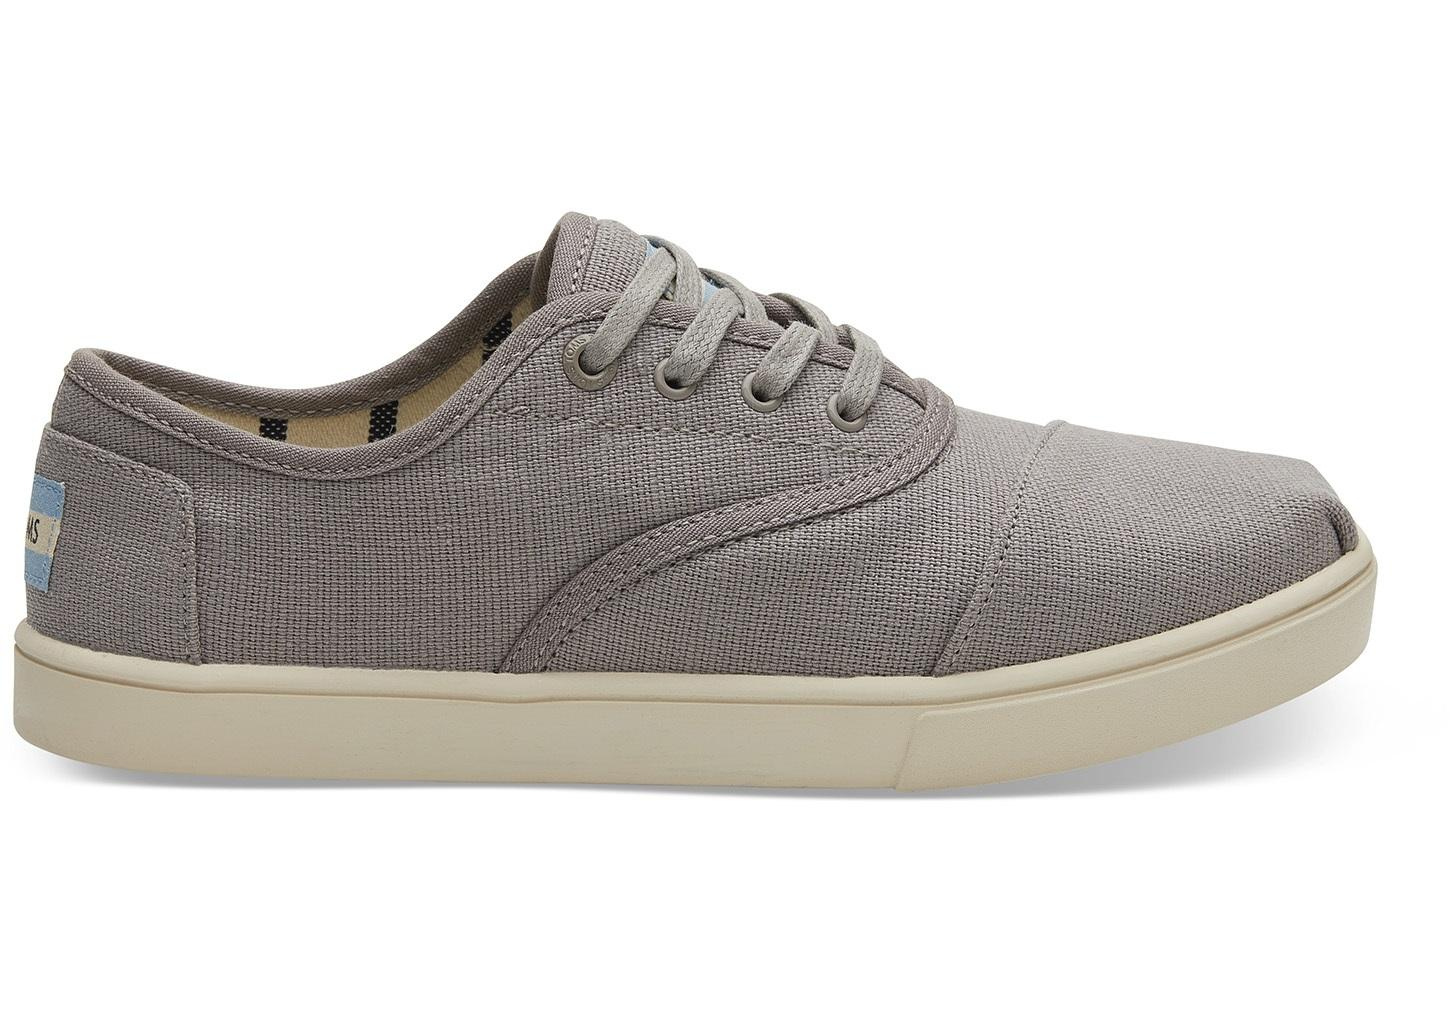 8cb47d9a46c TOMS. Gray Morning Dove Heritage Canvas Women s Cupsole Cordones Sneakers  Venice Collection